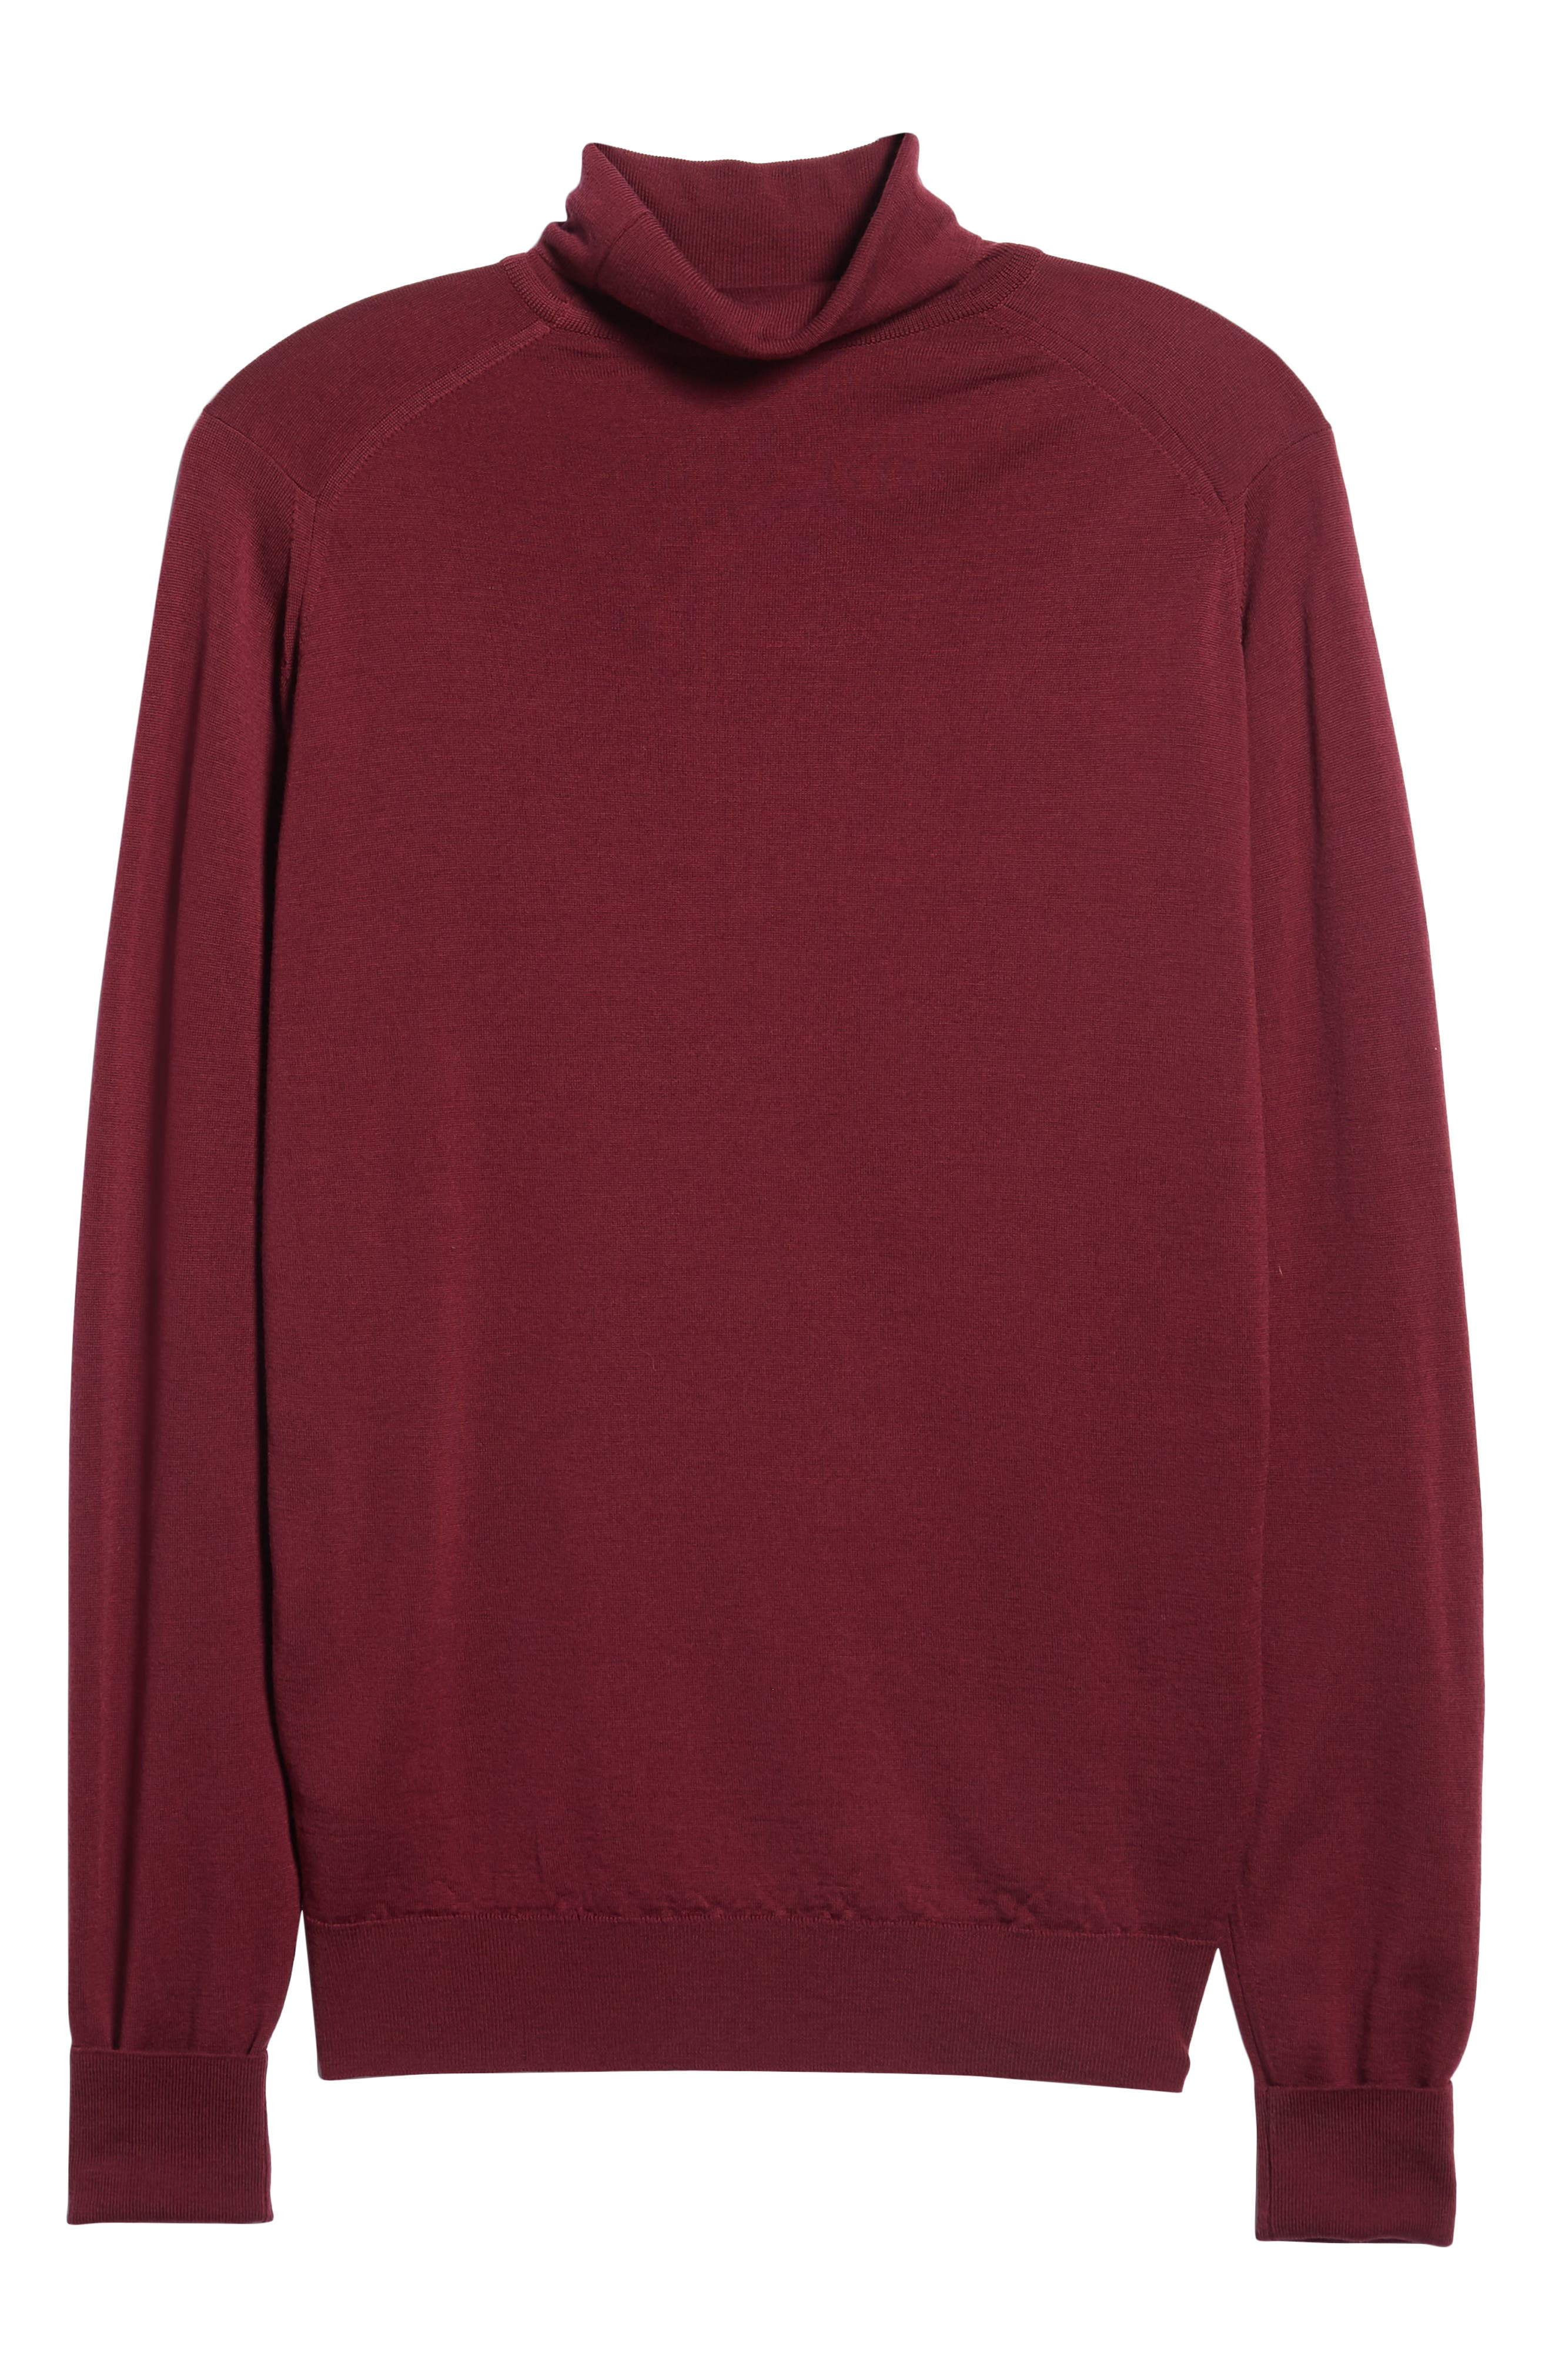 'Richards' Easy Fit Turtleneck Wool Sweater,                             Alternate thumbnail 44, color,